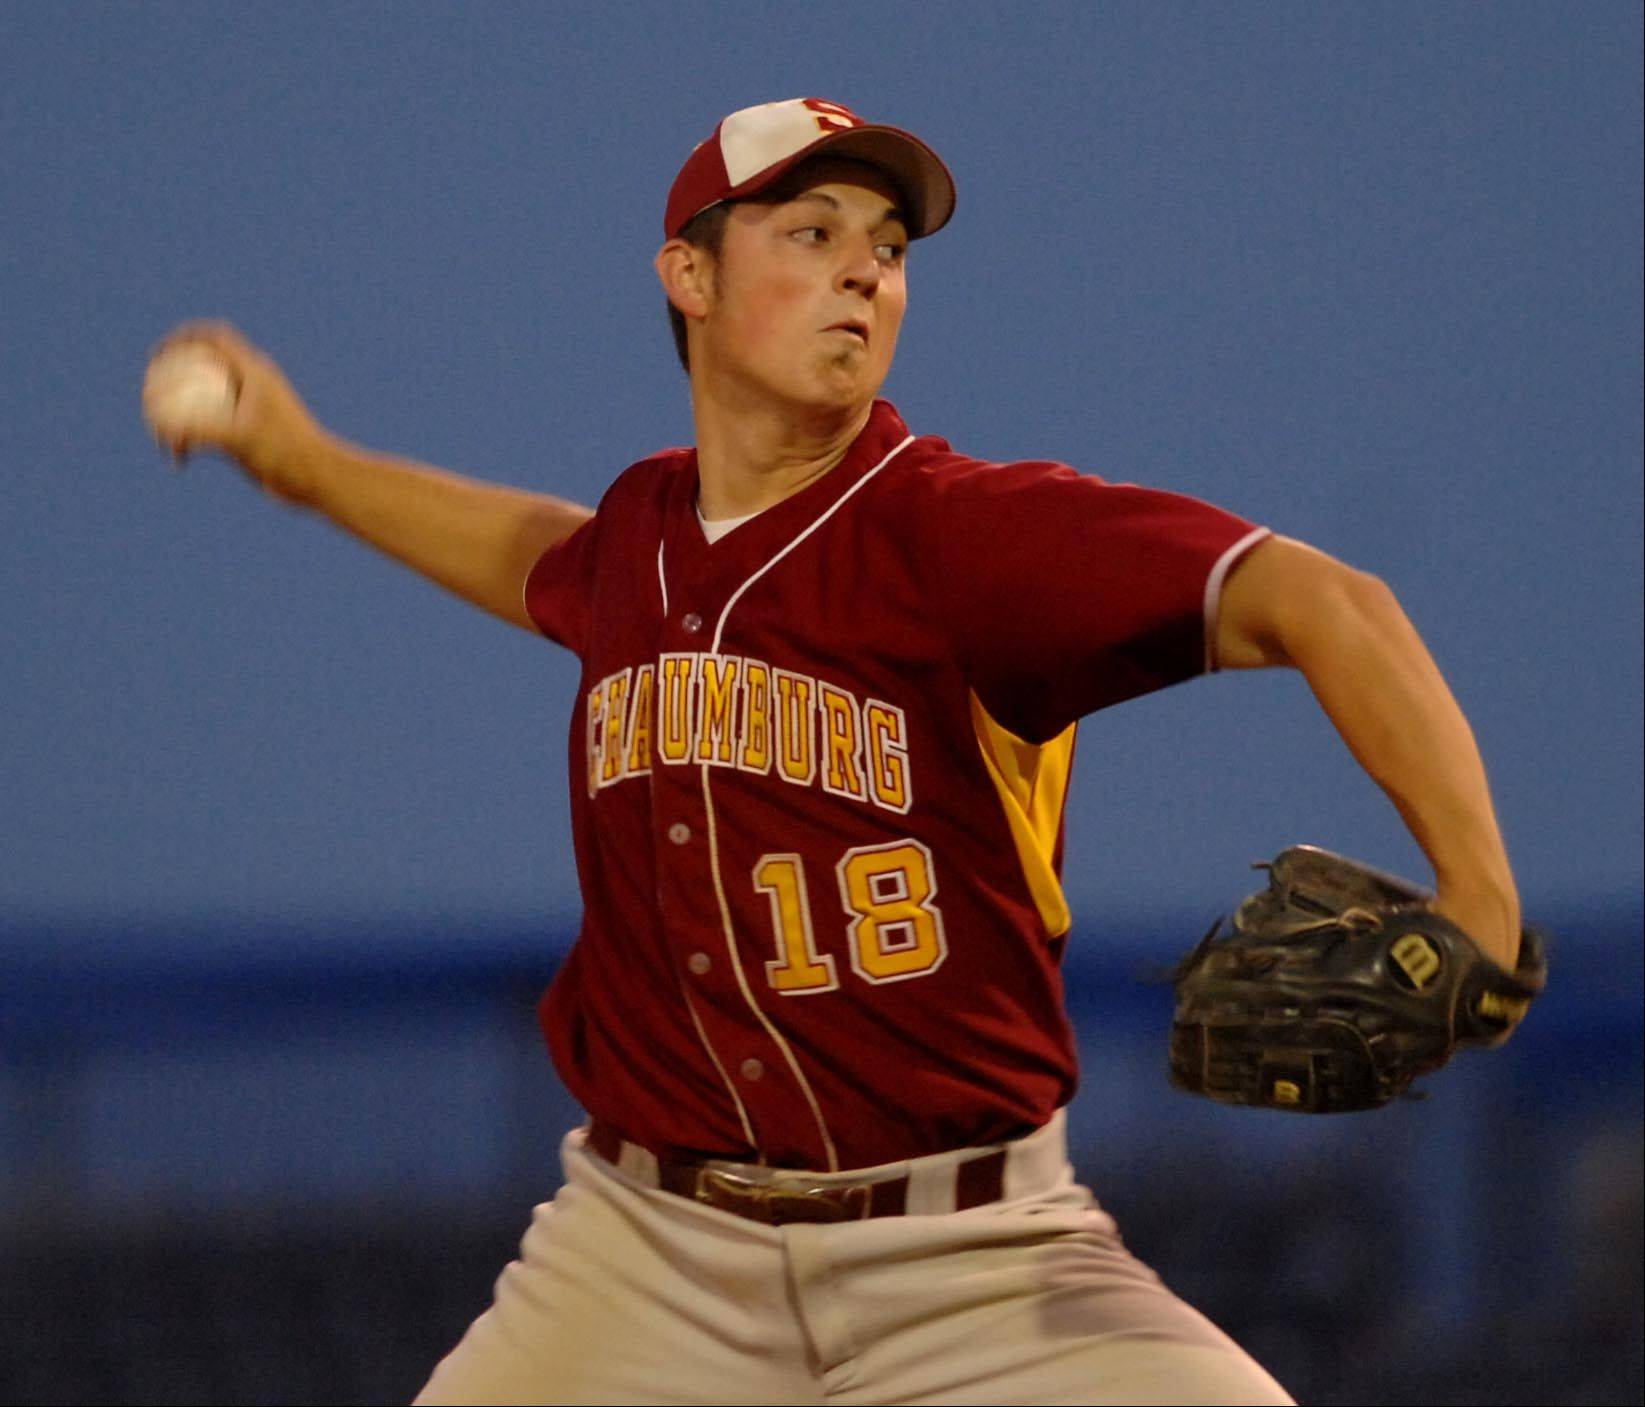 Schaumburg's Matt Brancato pitches in relief against Grant in the Class 4A Rockford supersectional at Riverhawks Stadium on Monday.